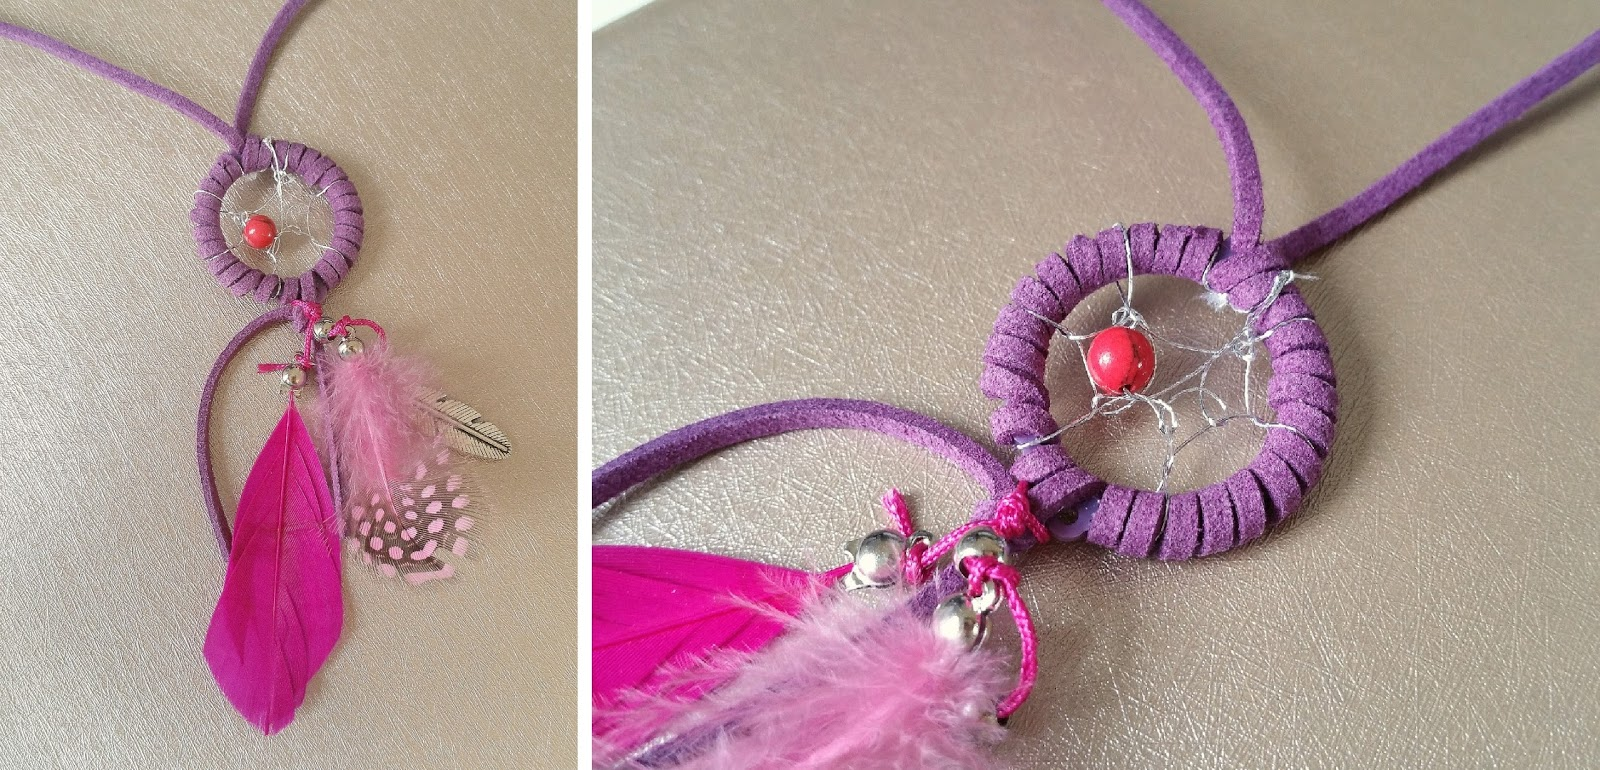 myStyle Dreamcatcher Jewellery, make your own dreamcatcher, Boho style jewellery kit